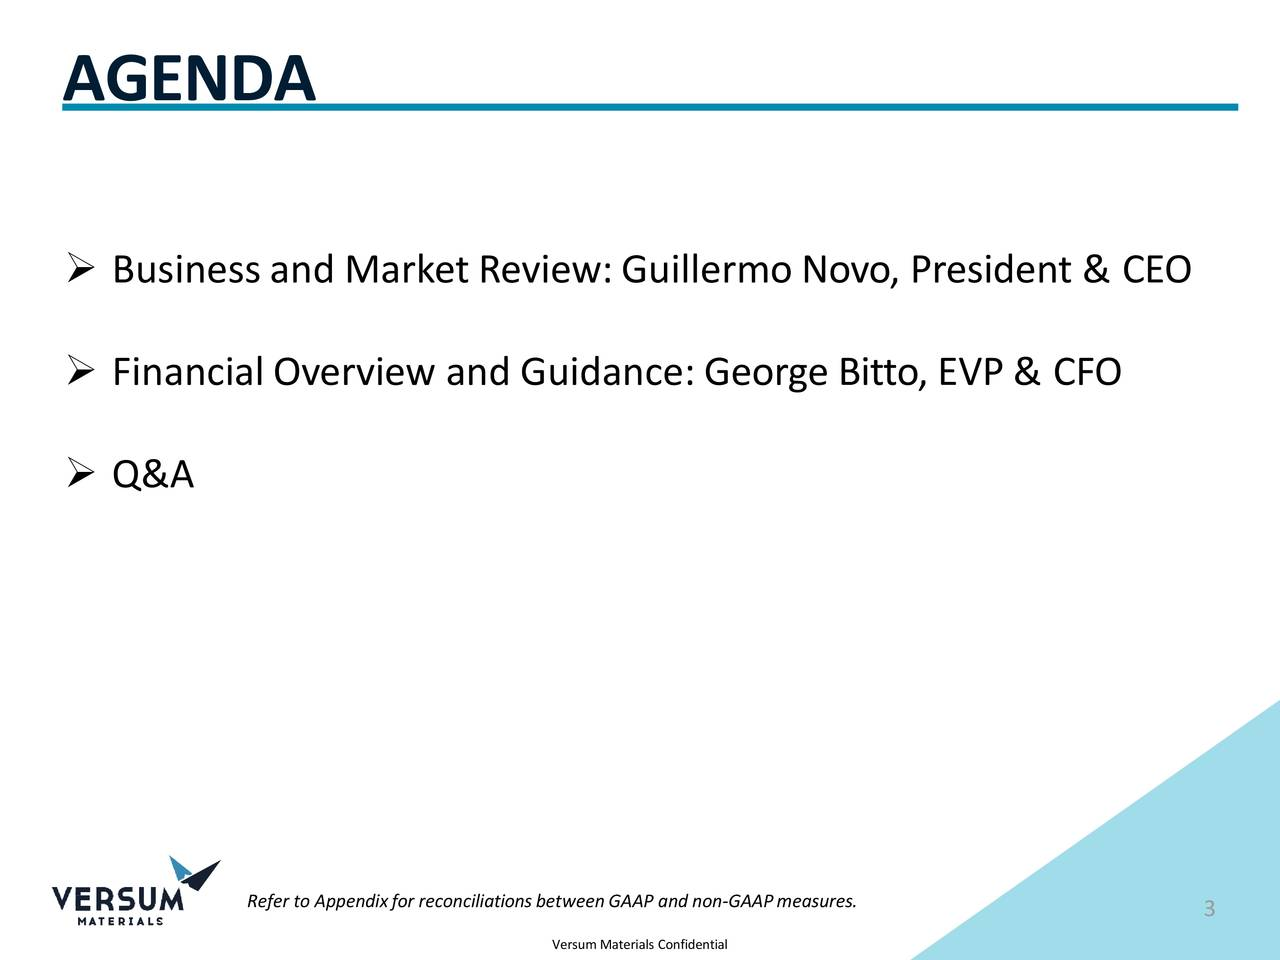 ➢ Business and Market Review:Guillermo Novo, President & CEO ➢ Financial Overview and Guidance: George Bitto, EVP & CFO ➢ Q&A Refer to Appendixfor reconciliationsbetweenGAAP and 3on-GAAPmeasures.